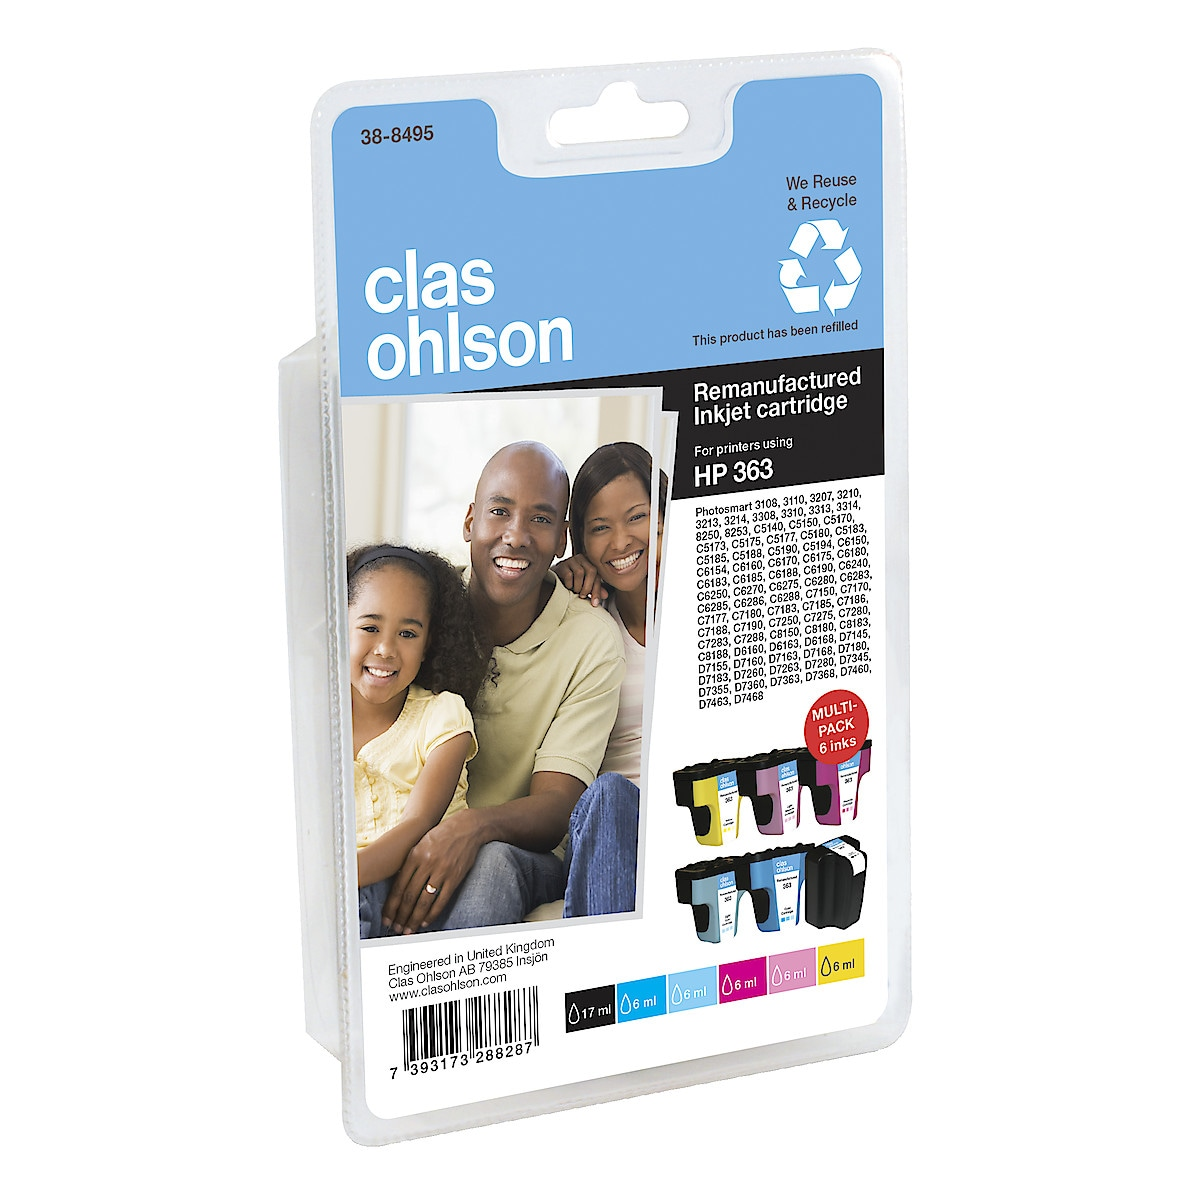 Clas Ohlson HP 363 Multipack Ink Cartridges